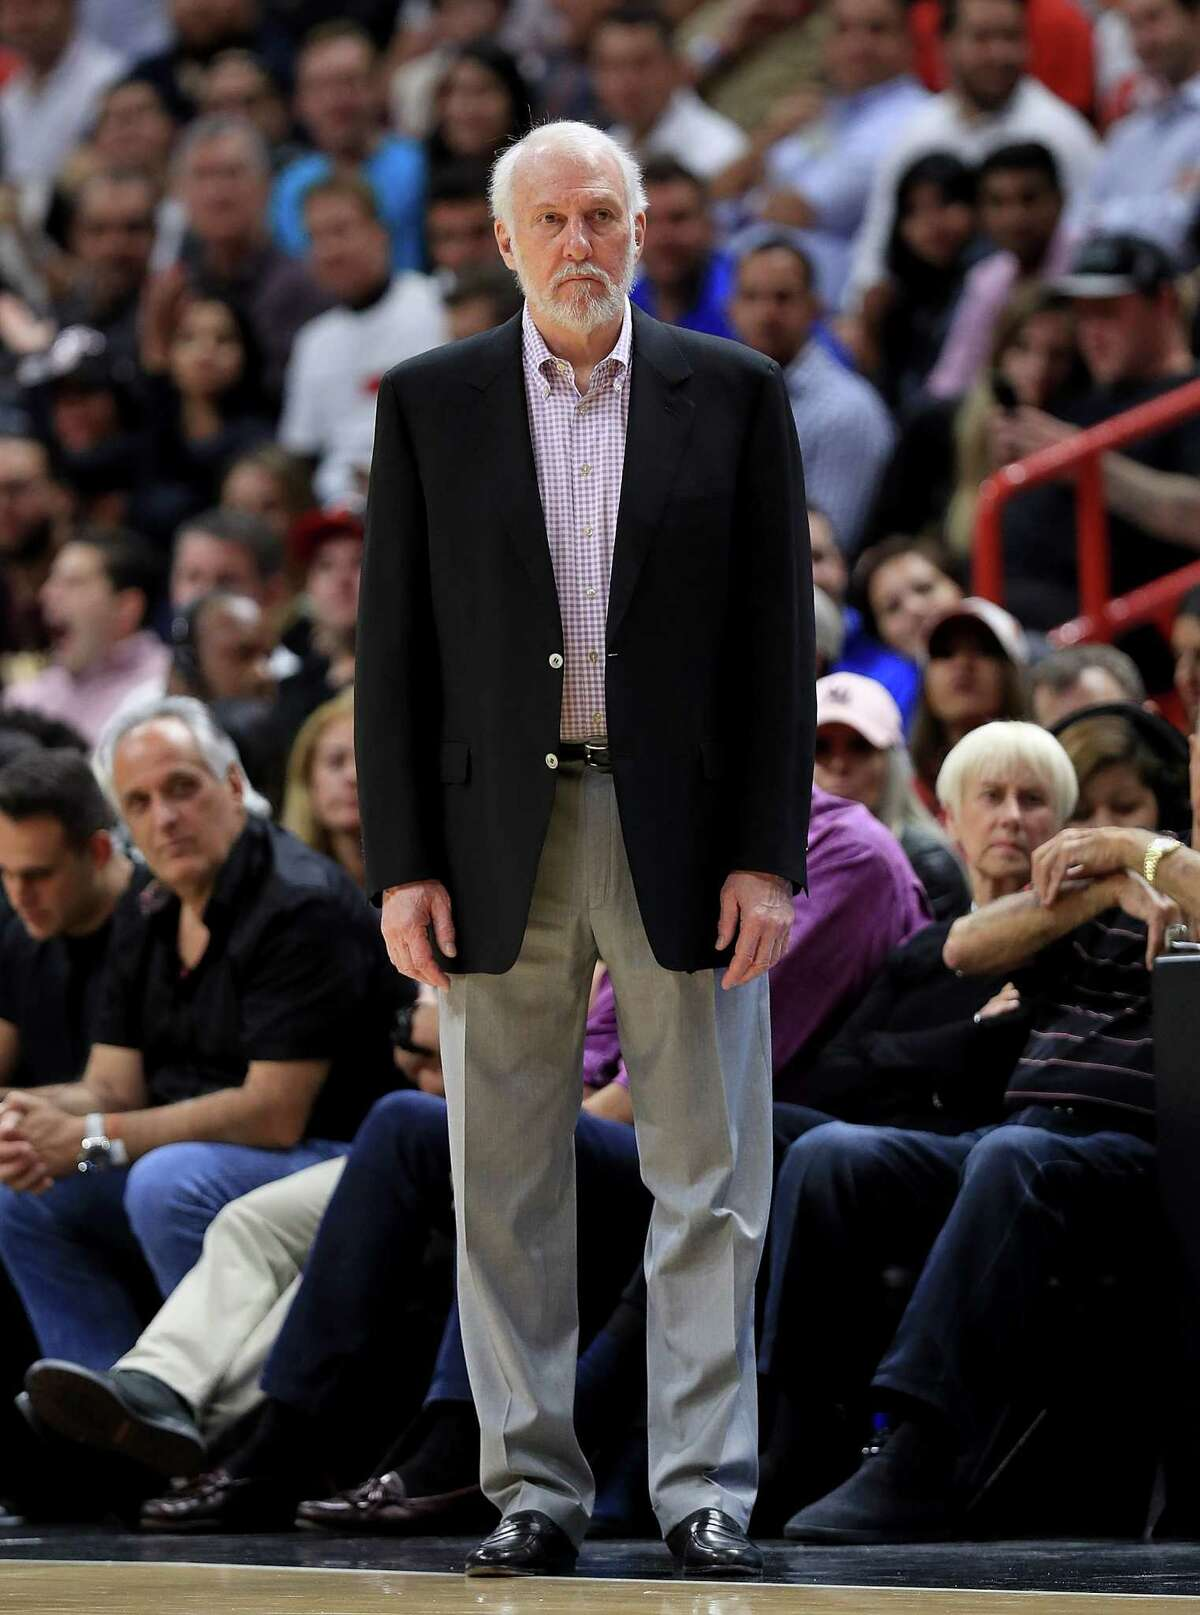 MIAMI, FL - OCTOBER 25: Head coach Gregg Popovich of the San Antonio Spurs looks on during a game against the Miami Heat at American Airlines Arena on October 25, 2017 in Miami, Florida. NOTE TO USER: User expressly acknowledges and agrees that, by downloading and or using this photograph, User is consenting to the terms and conditions of the Getty Images License Agreement. (Photo by Mike Ehrmann/Getty Images) ORG XMIT: 775026707